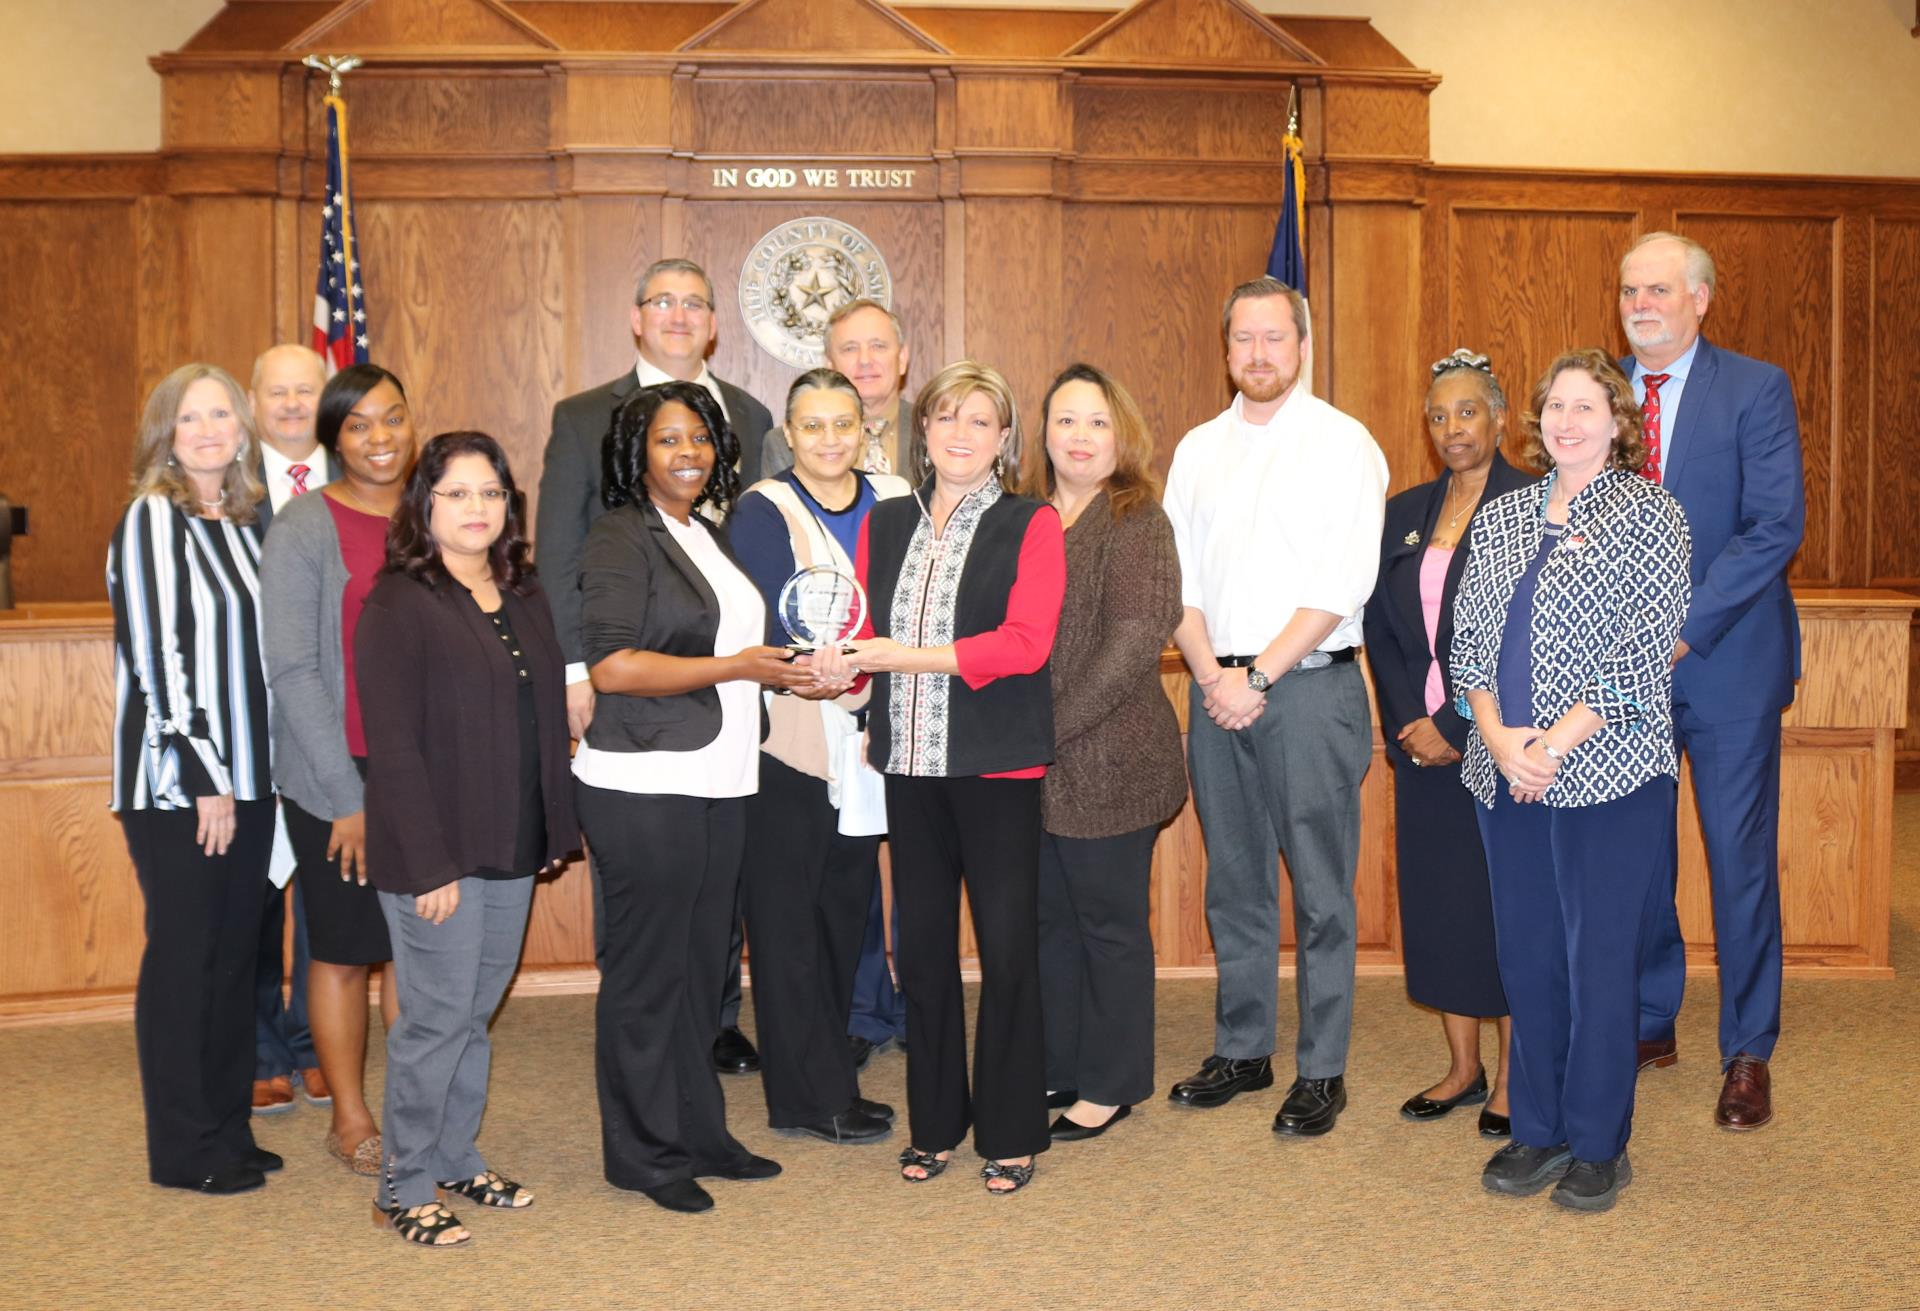 County Clerk of Smith County Receives Modern Digital Government Leadership Award